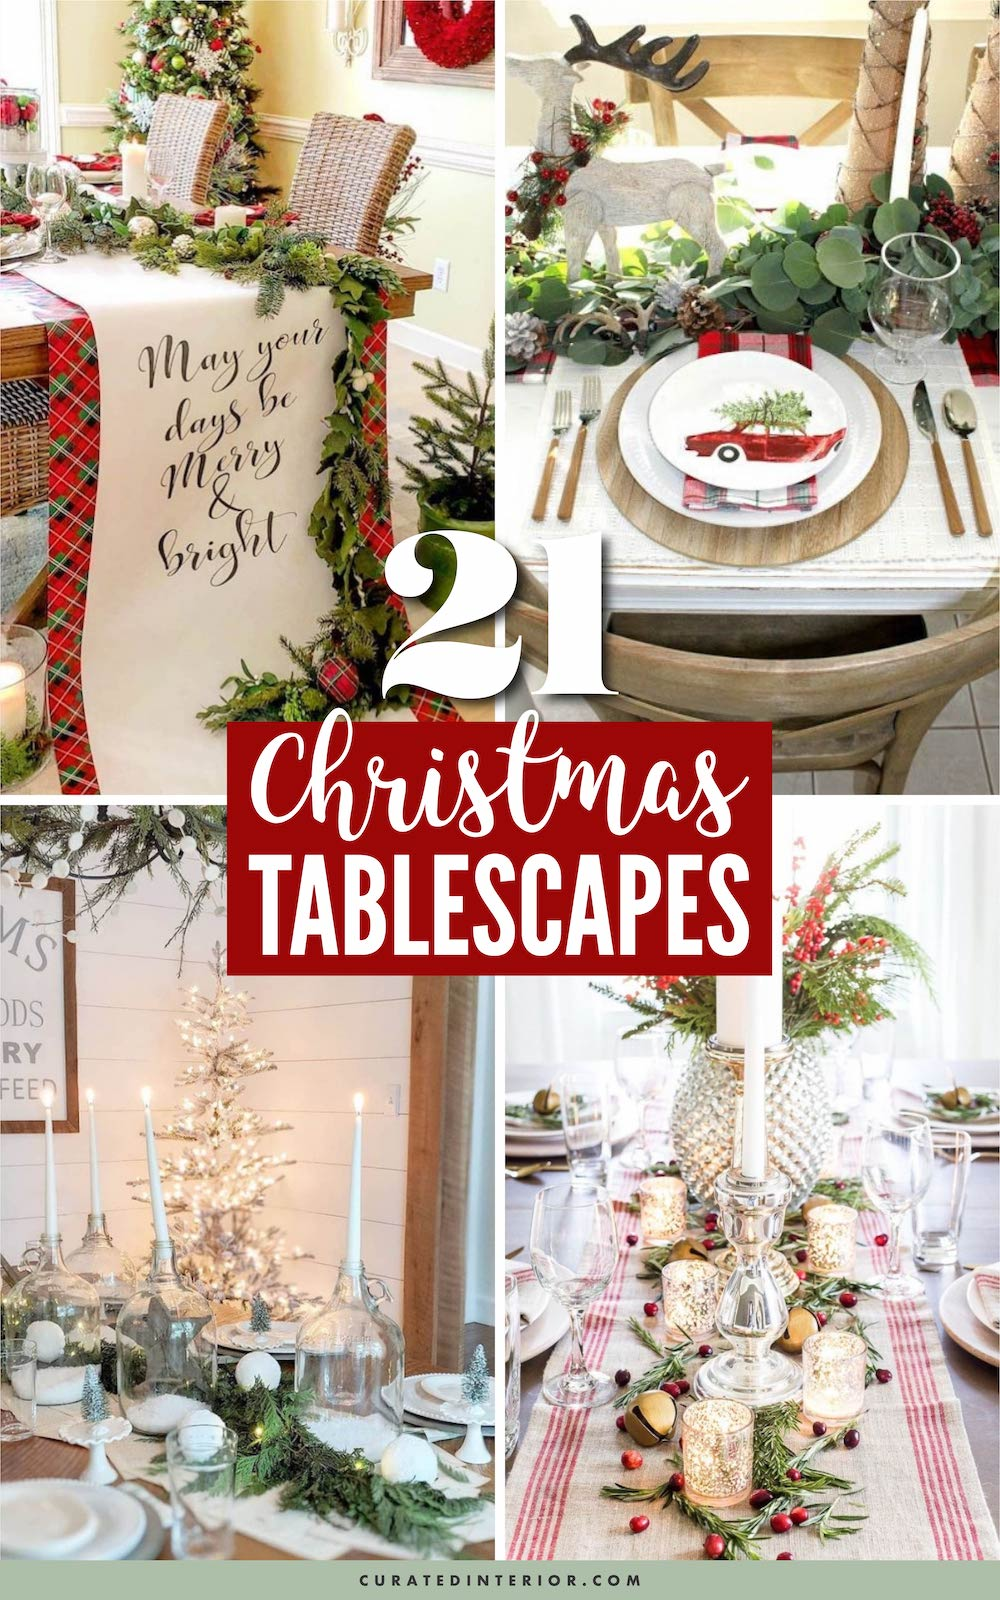 21 Christmas Tablescapes You Need to See!! #ChristmasDecor #ChristmasTablescapes